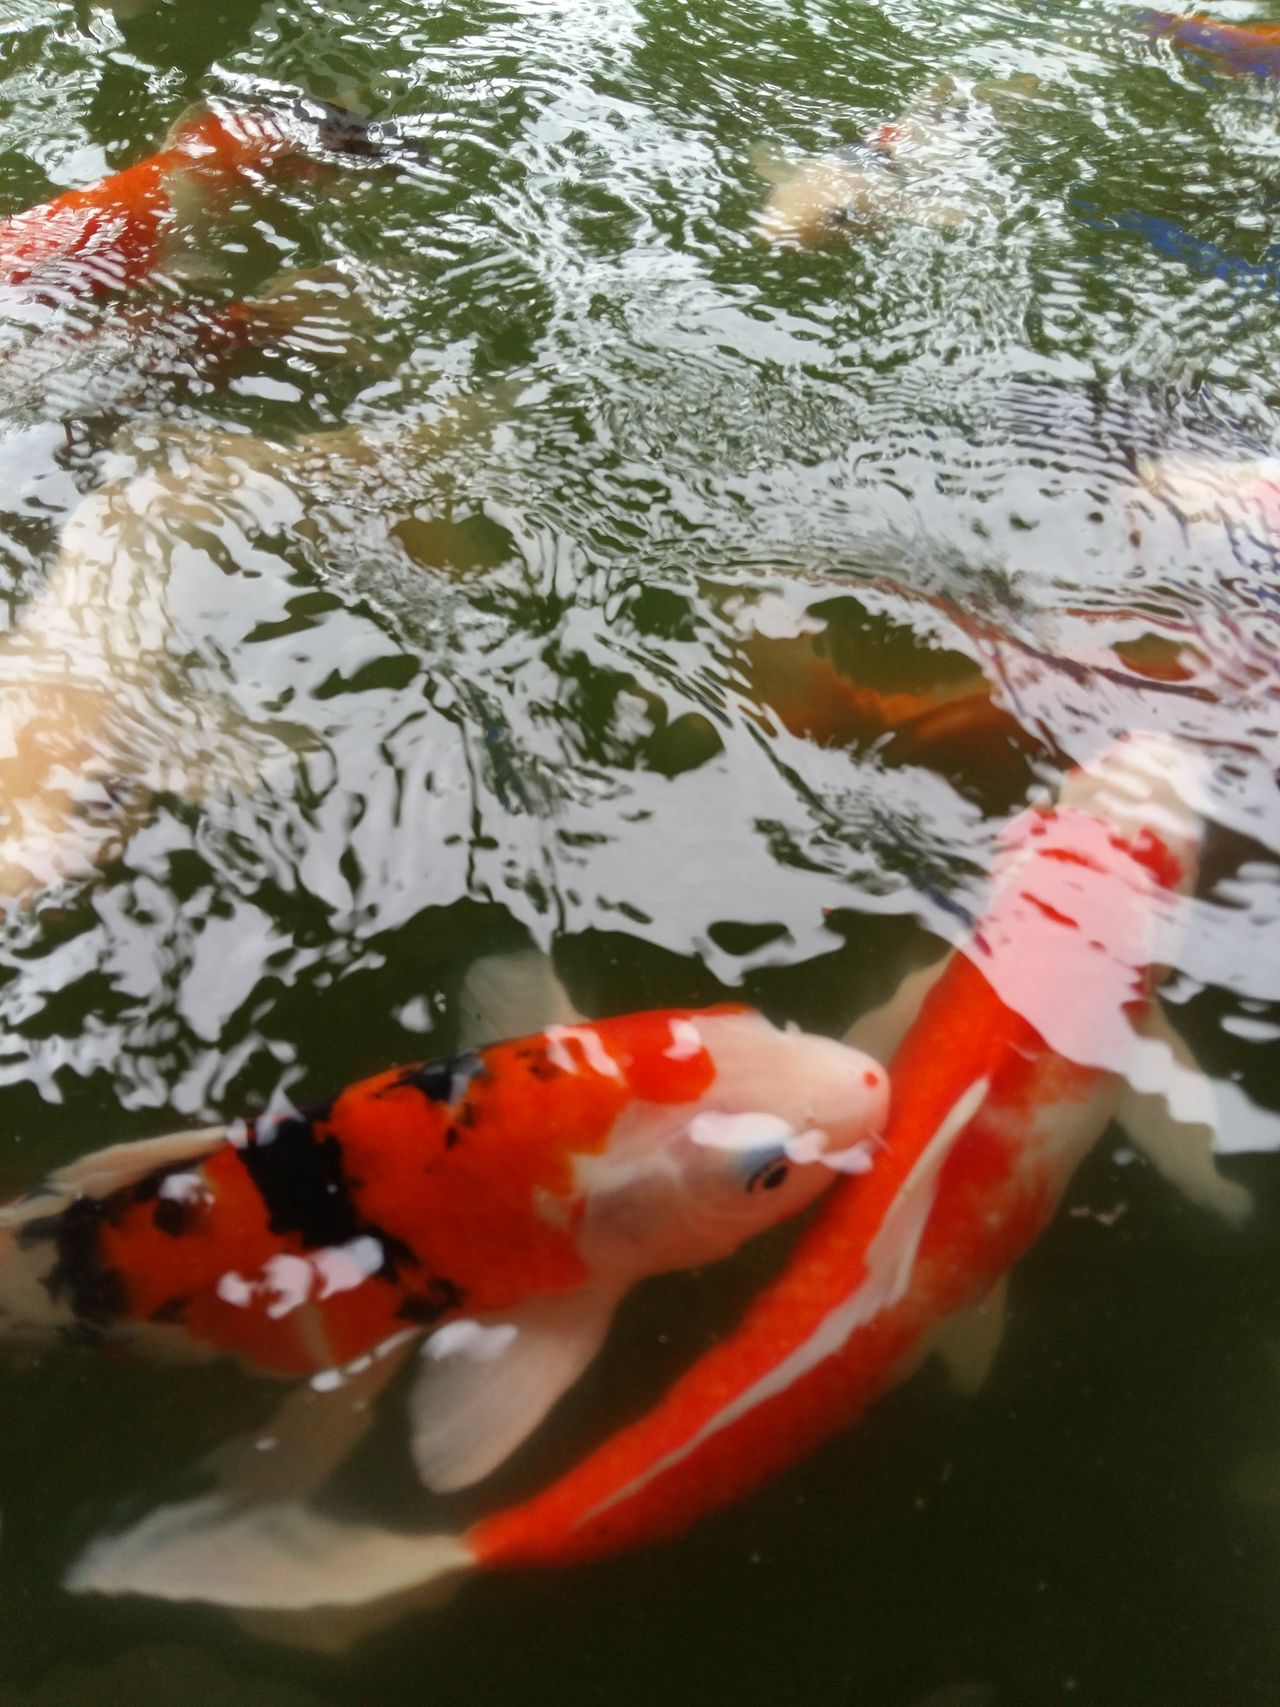 fancy carp in pool First Eyeem Photo Nature Fish Fancycarp Fancy Carp Fish Fancy Carb Fancy Carp